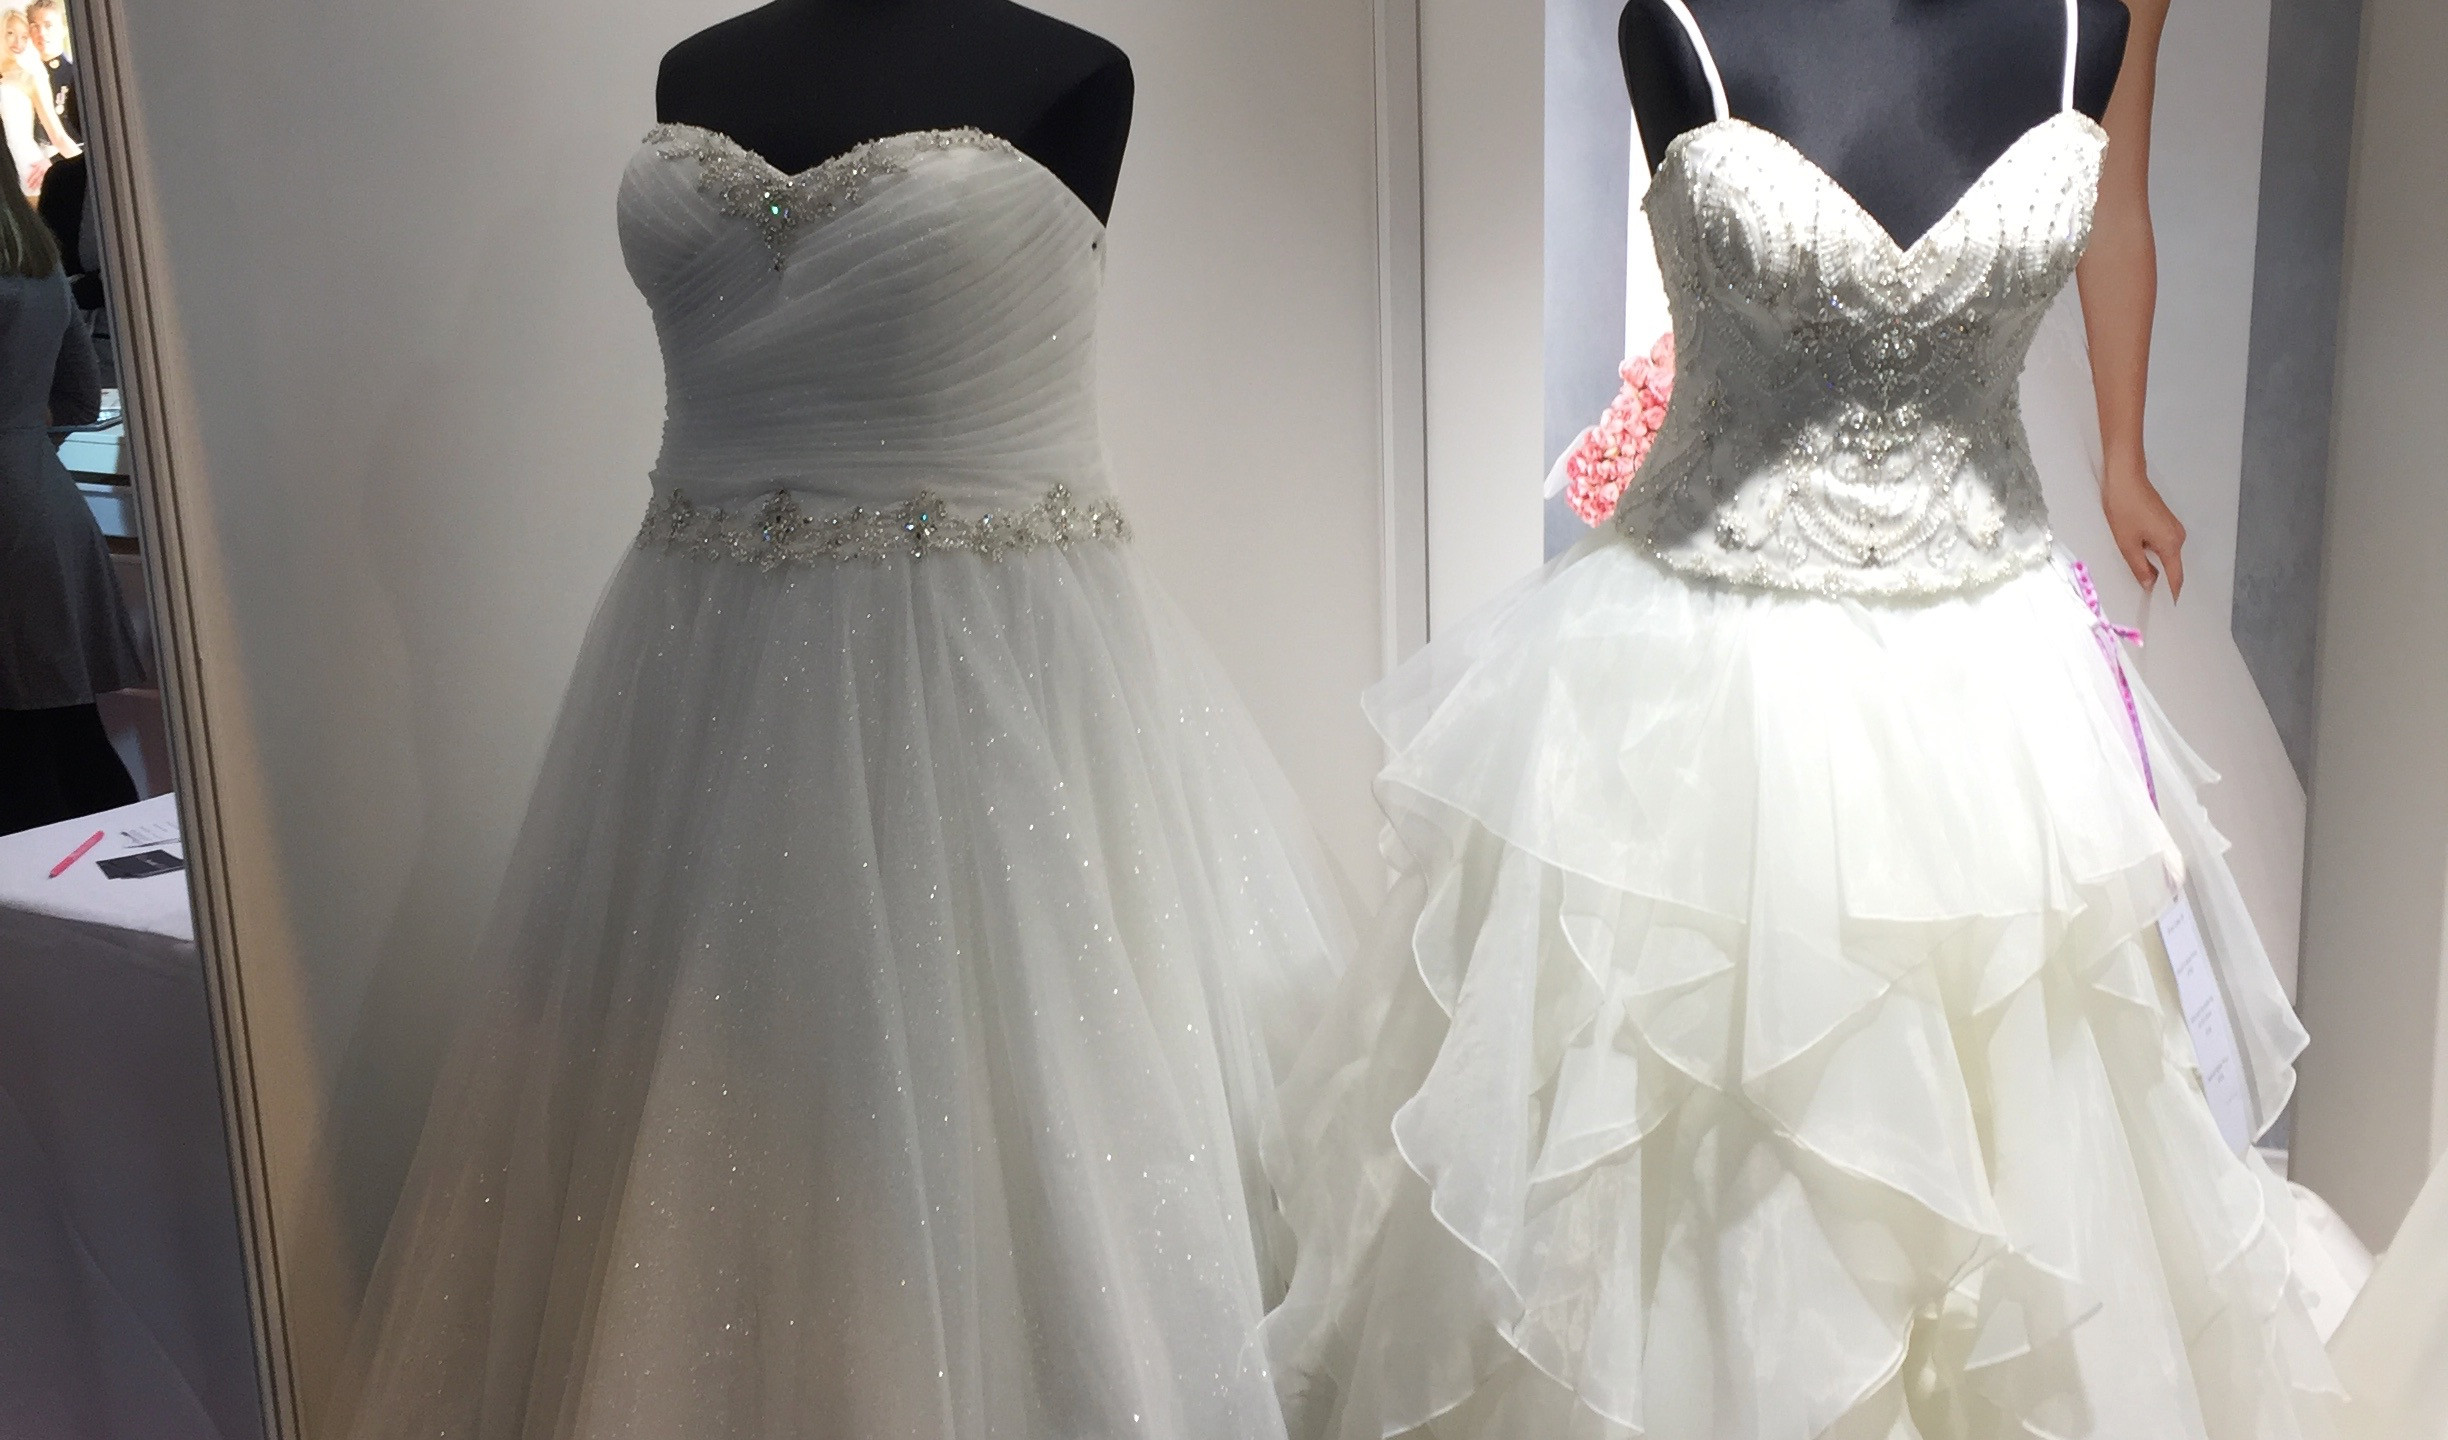 And more Plus Size mannequins from Roberta's Bridal